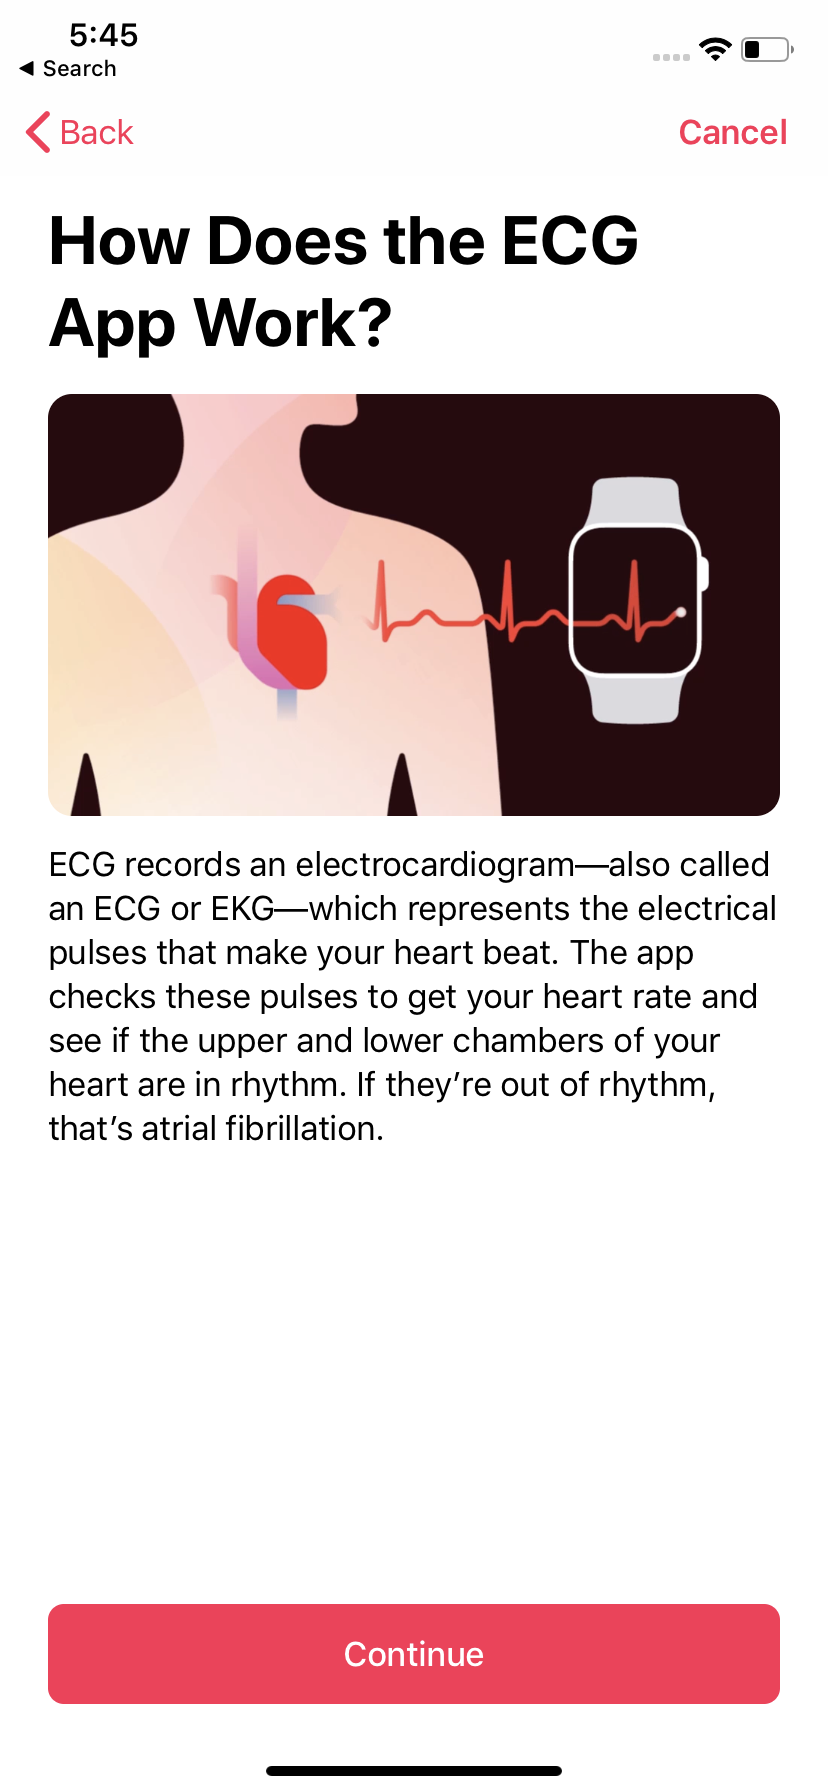 Apple makes it easy to understand what an ECG is with plain English.